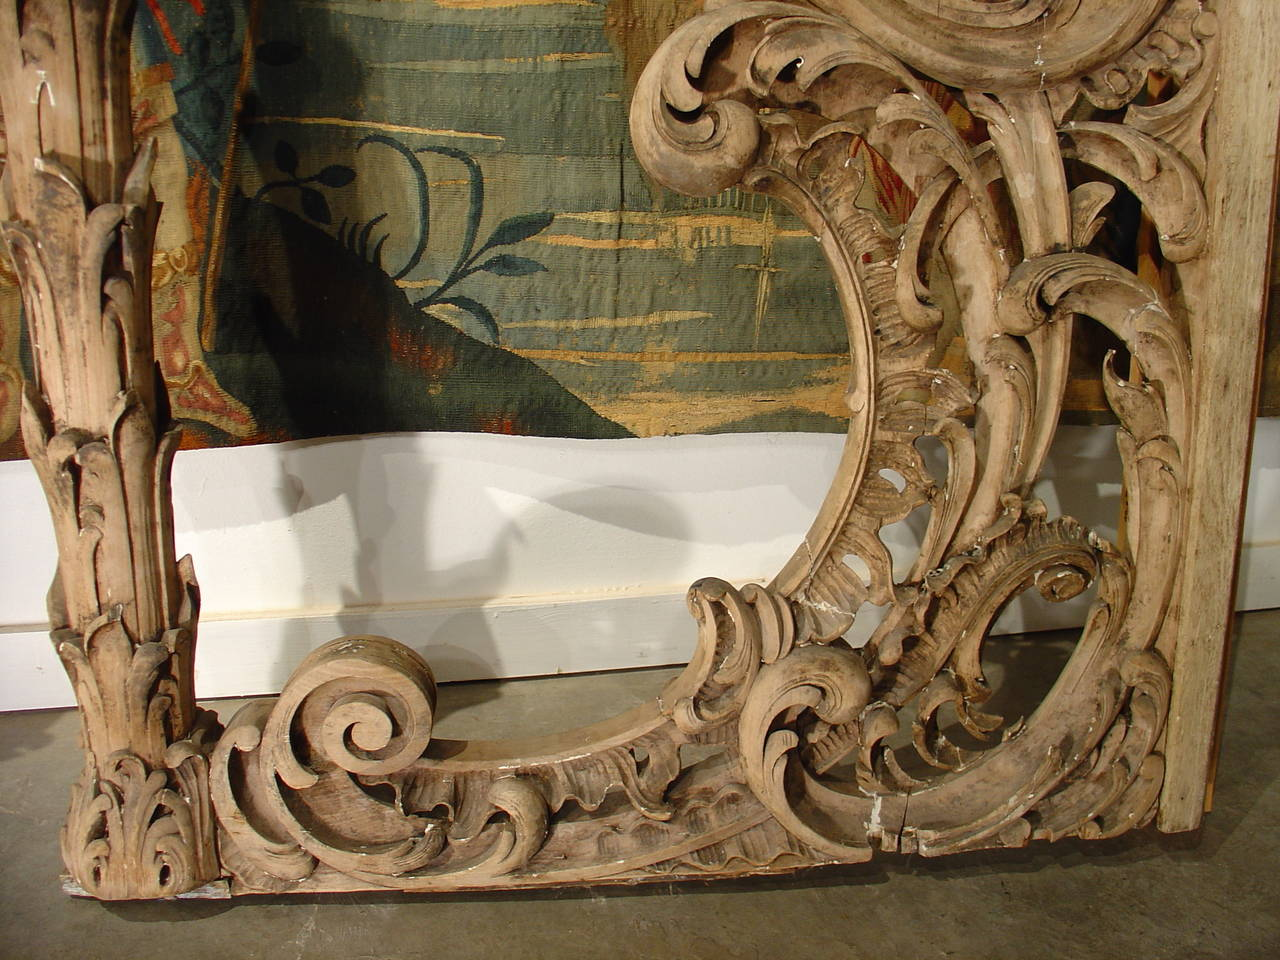 Rare Pair of Carved Antique French Walnut Wood Rococo Gates For Sale 1 - Rare Pair Of Carved Antique French Walnut Wood Rococo Gates At 1stdibs